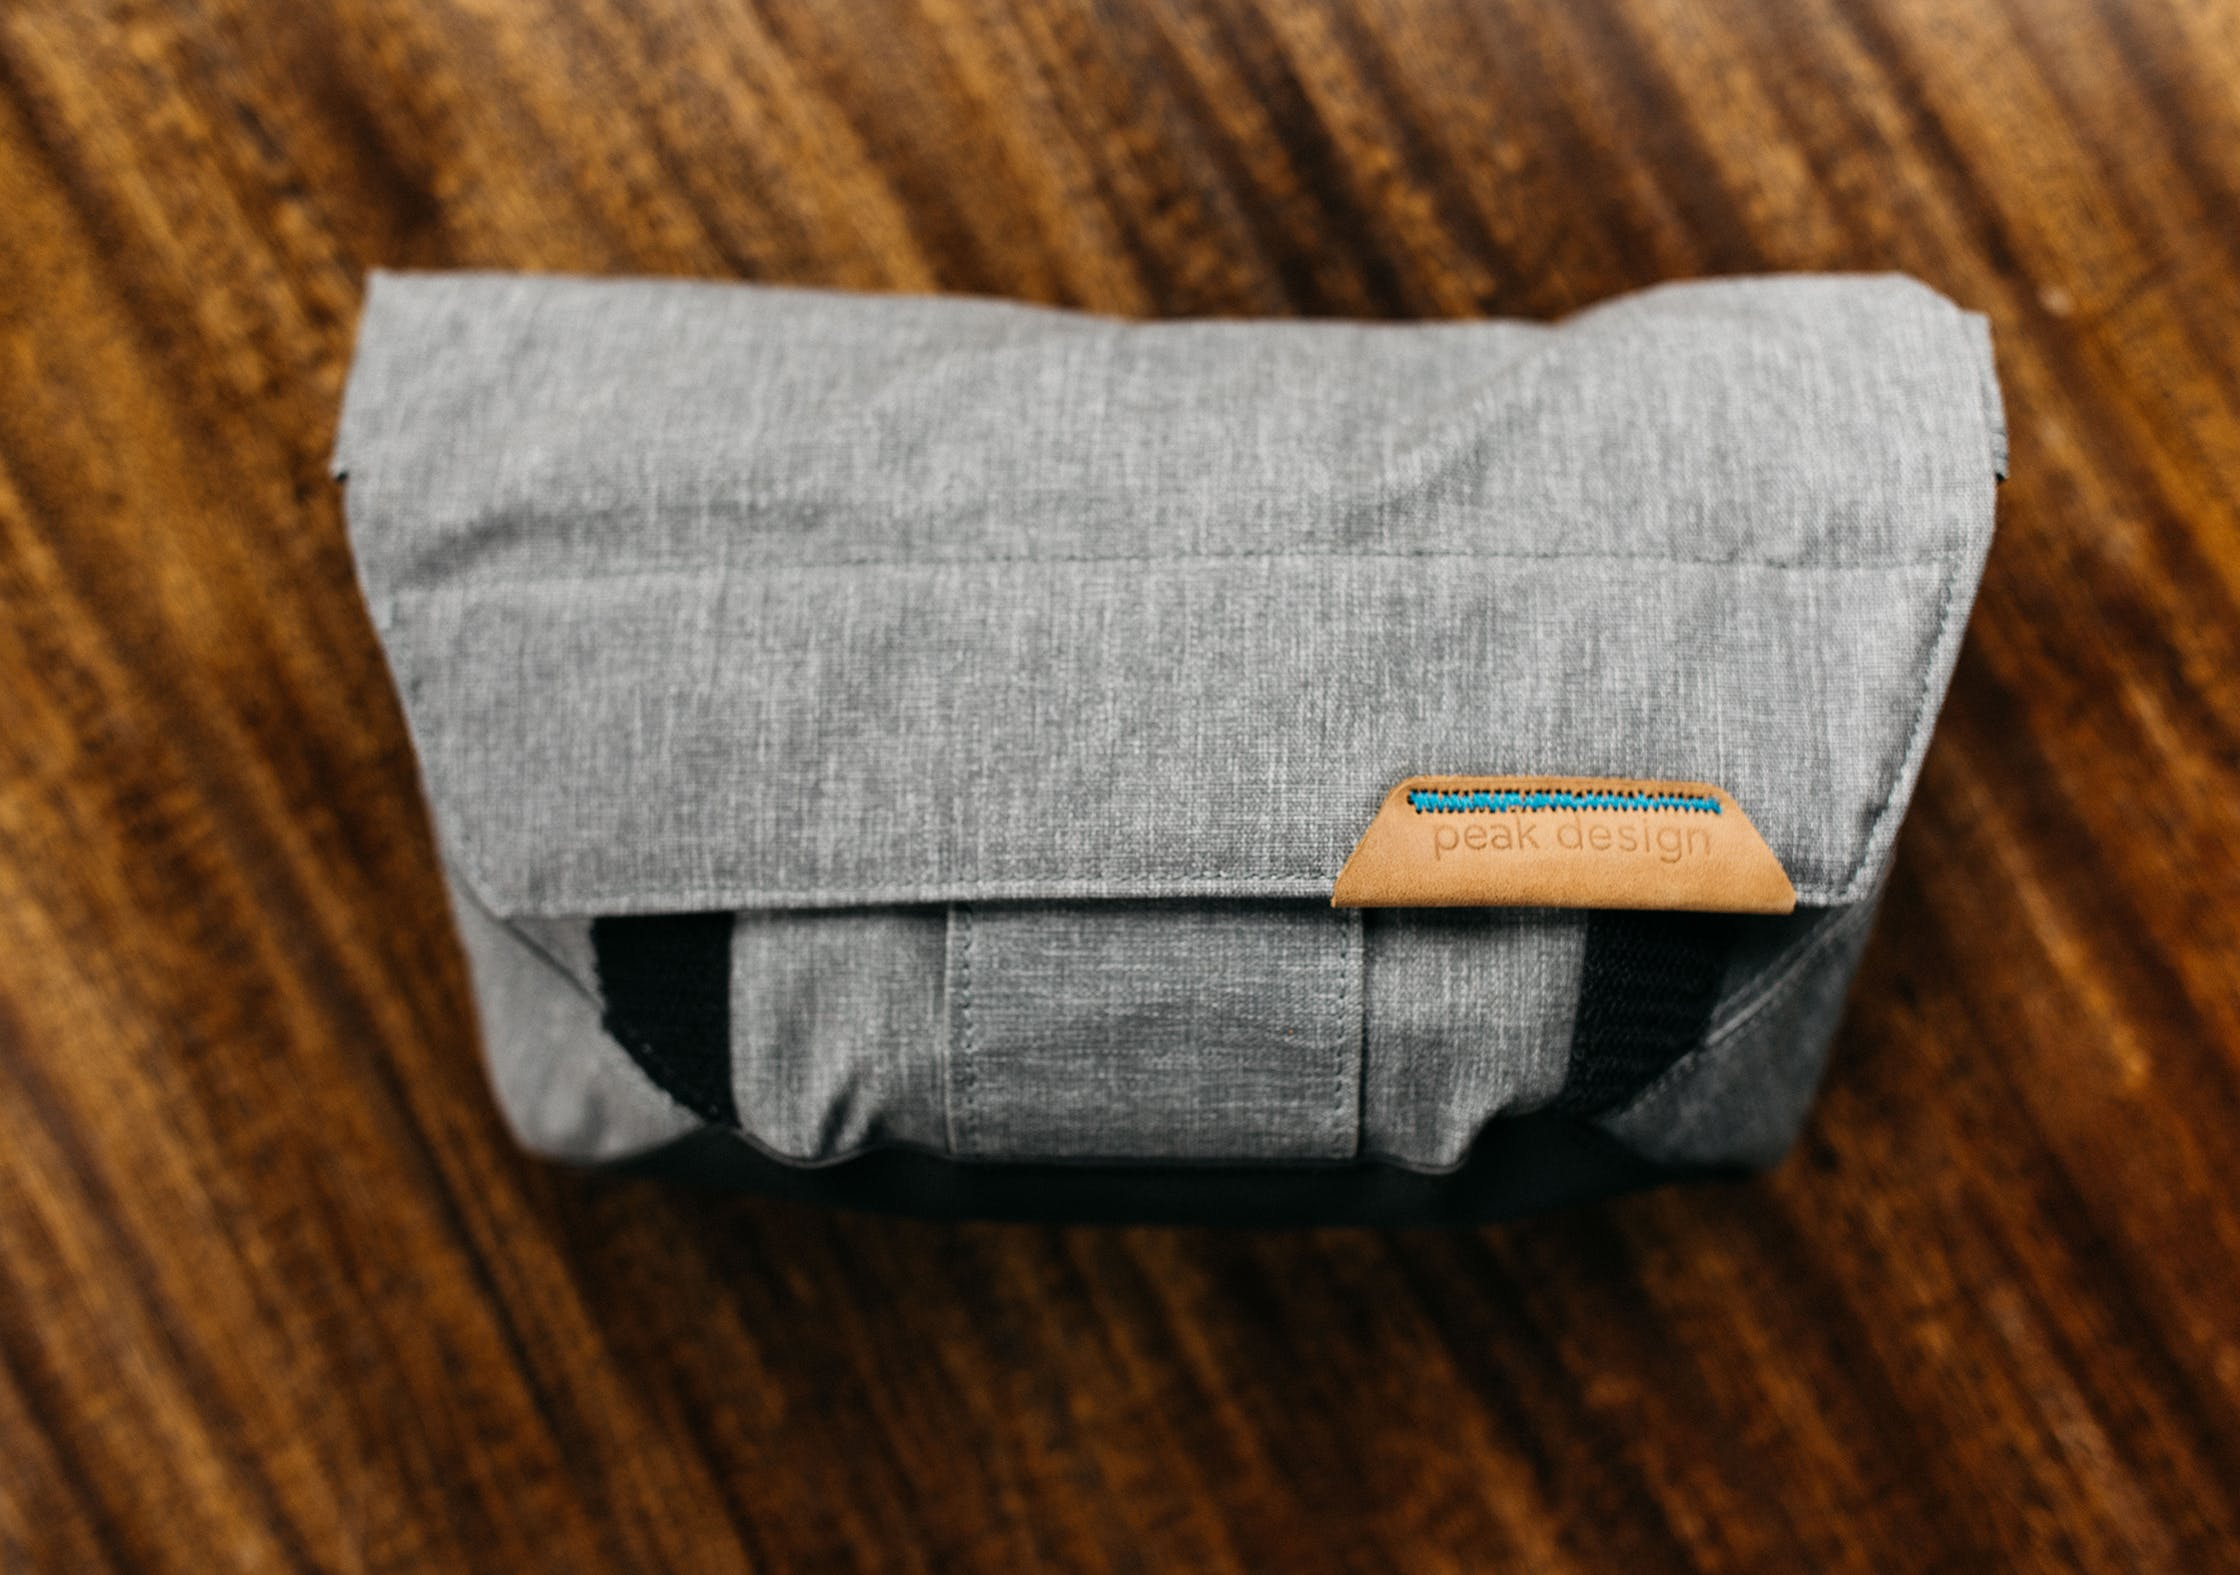 Peak Design Field Pouch In Use